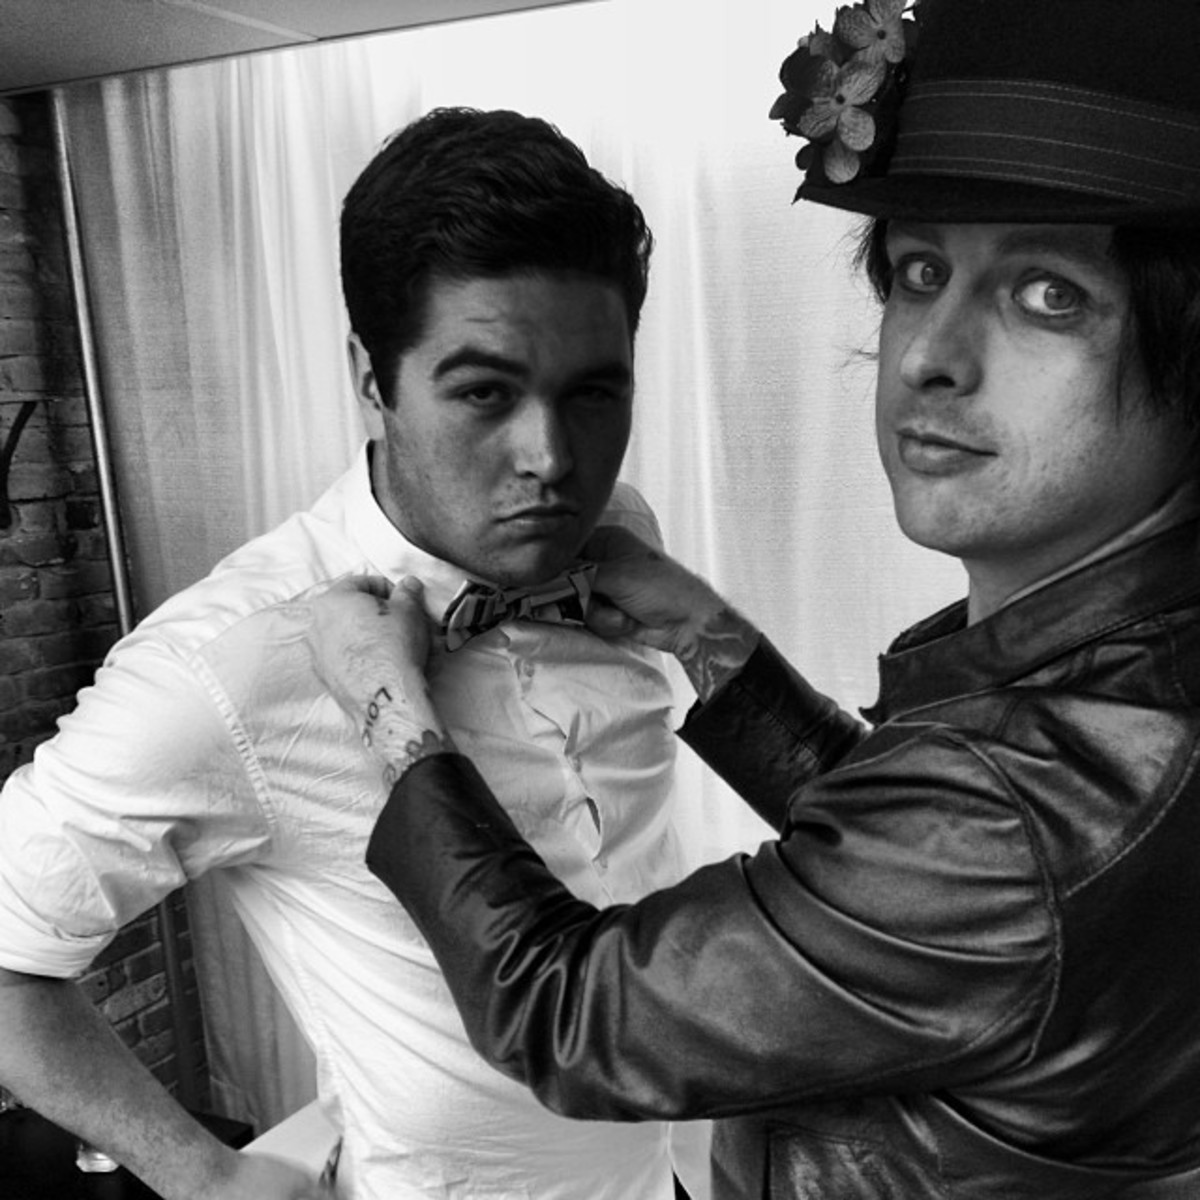 Billie Joe looking as young as his son while putting on a bowtie.